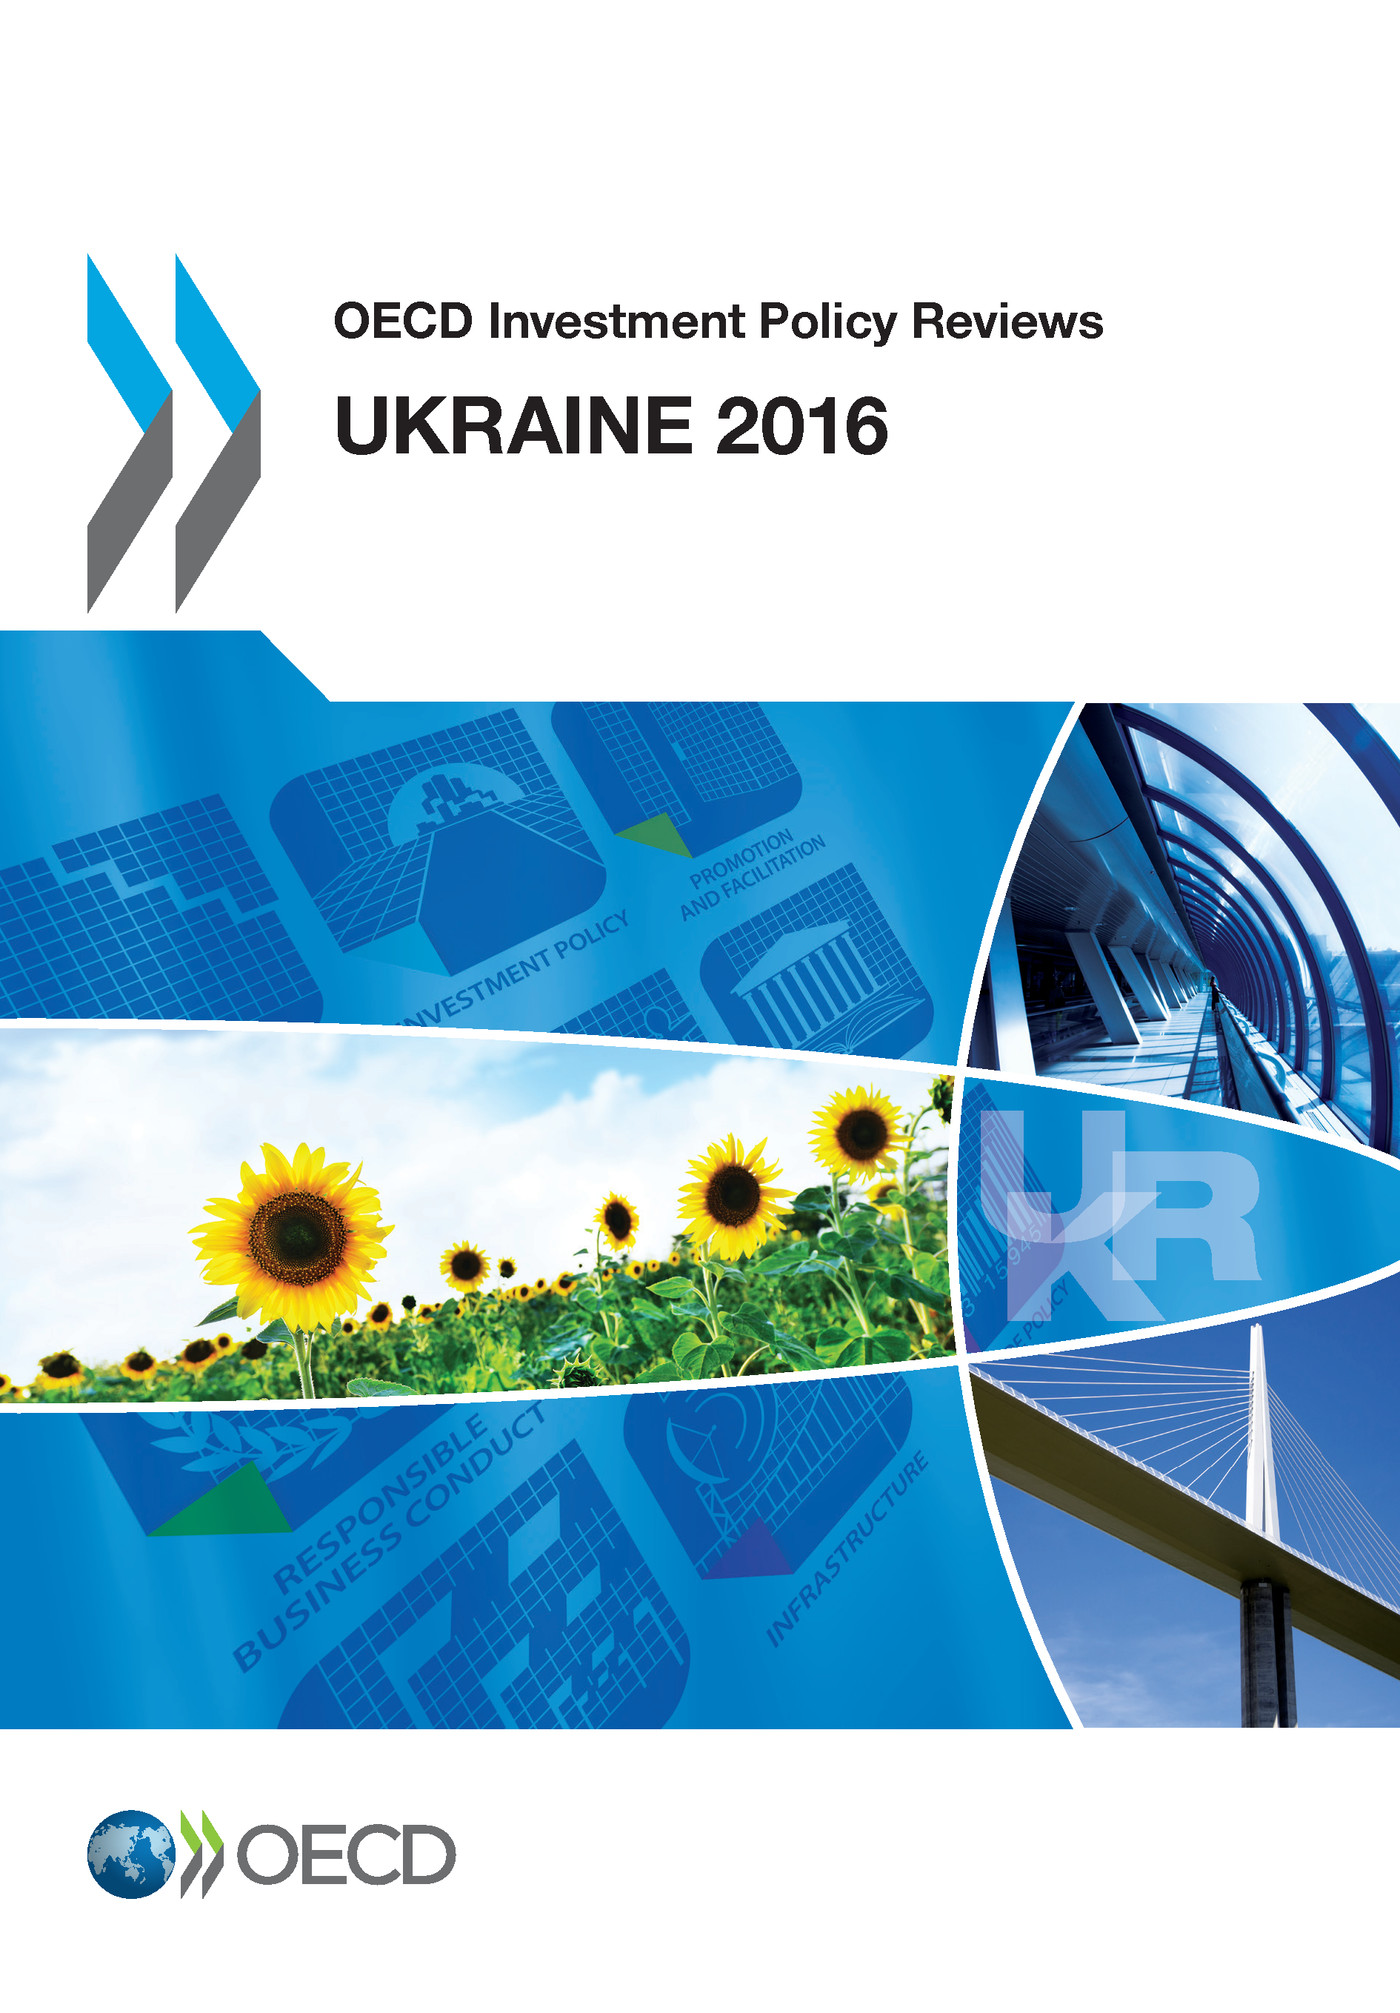 OECD Investment Policy Reviews: Ukraine 2016 De  Collectif - OCDE / OECD